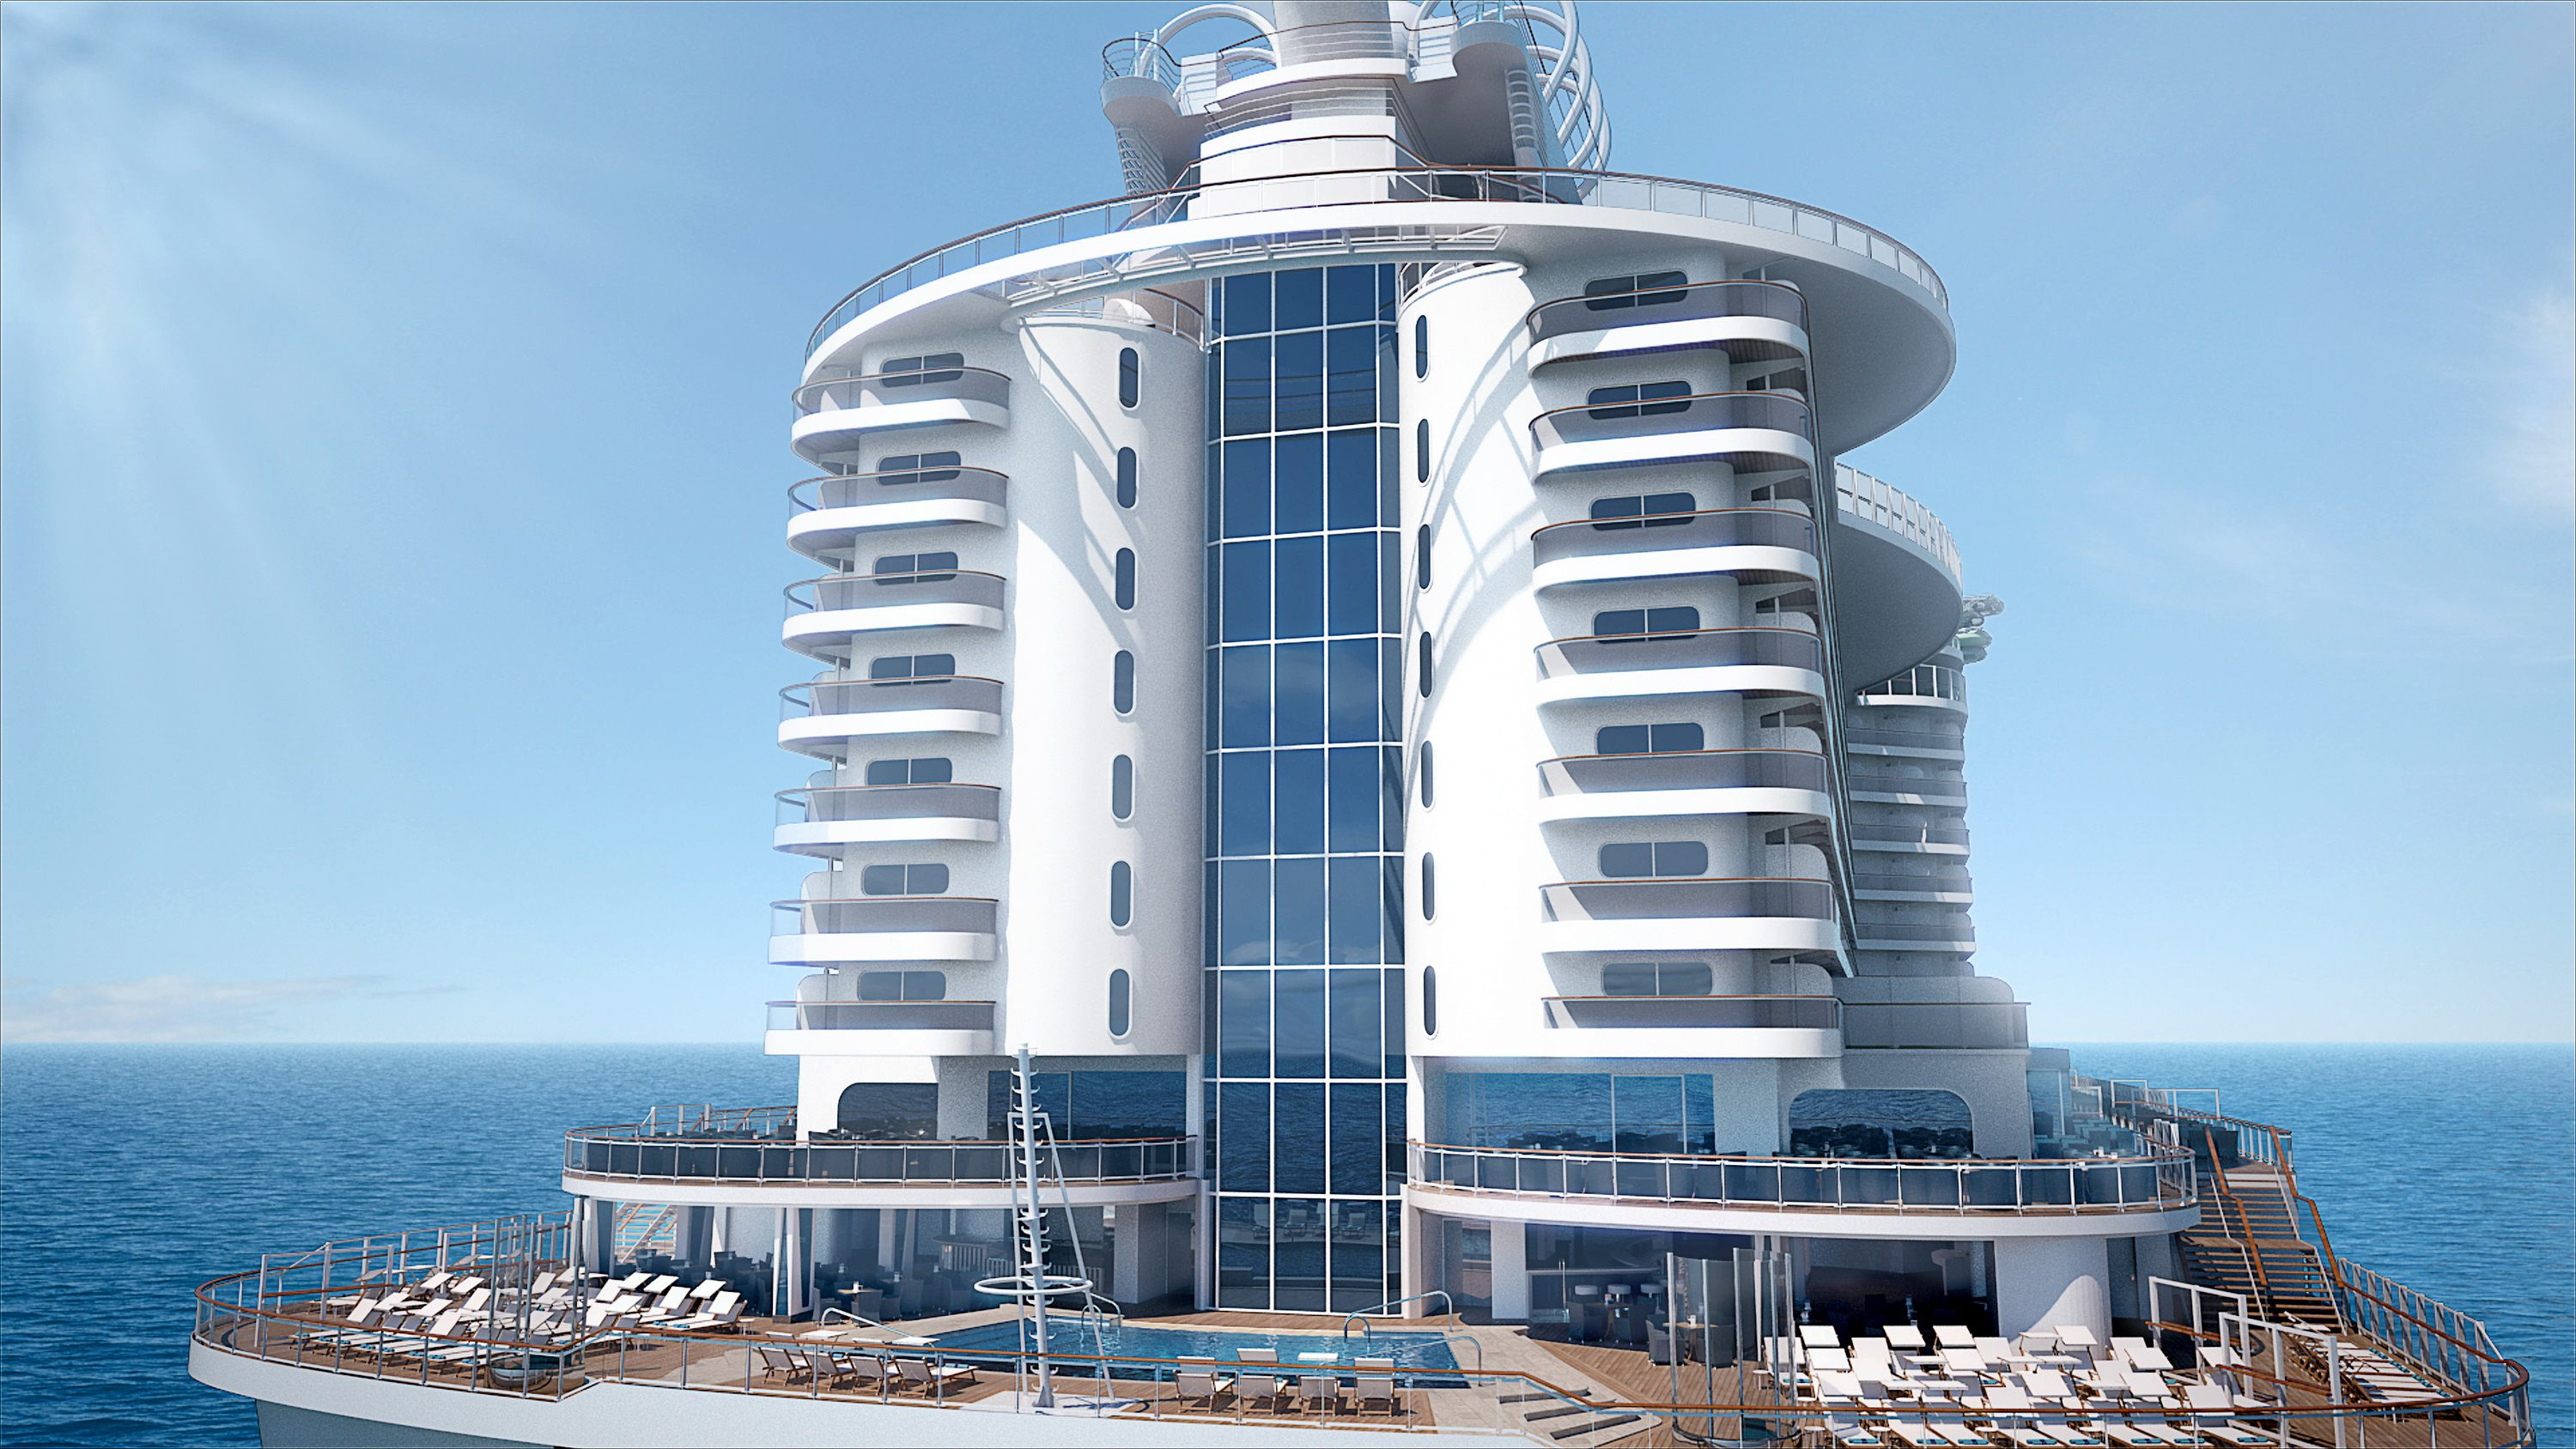 13 New Ocean Cruise Ships in 2018